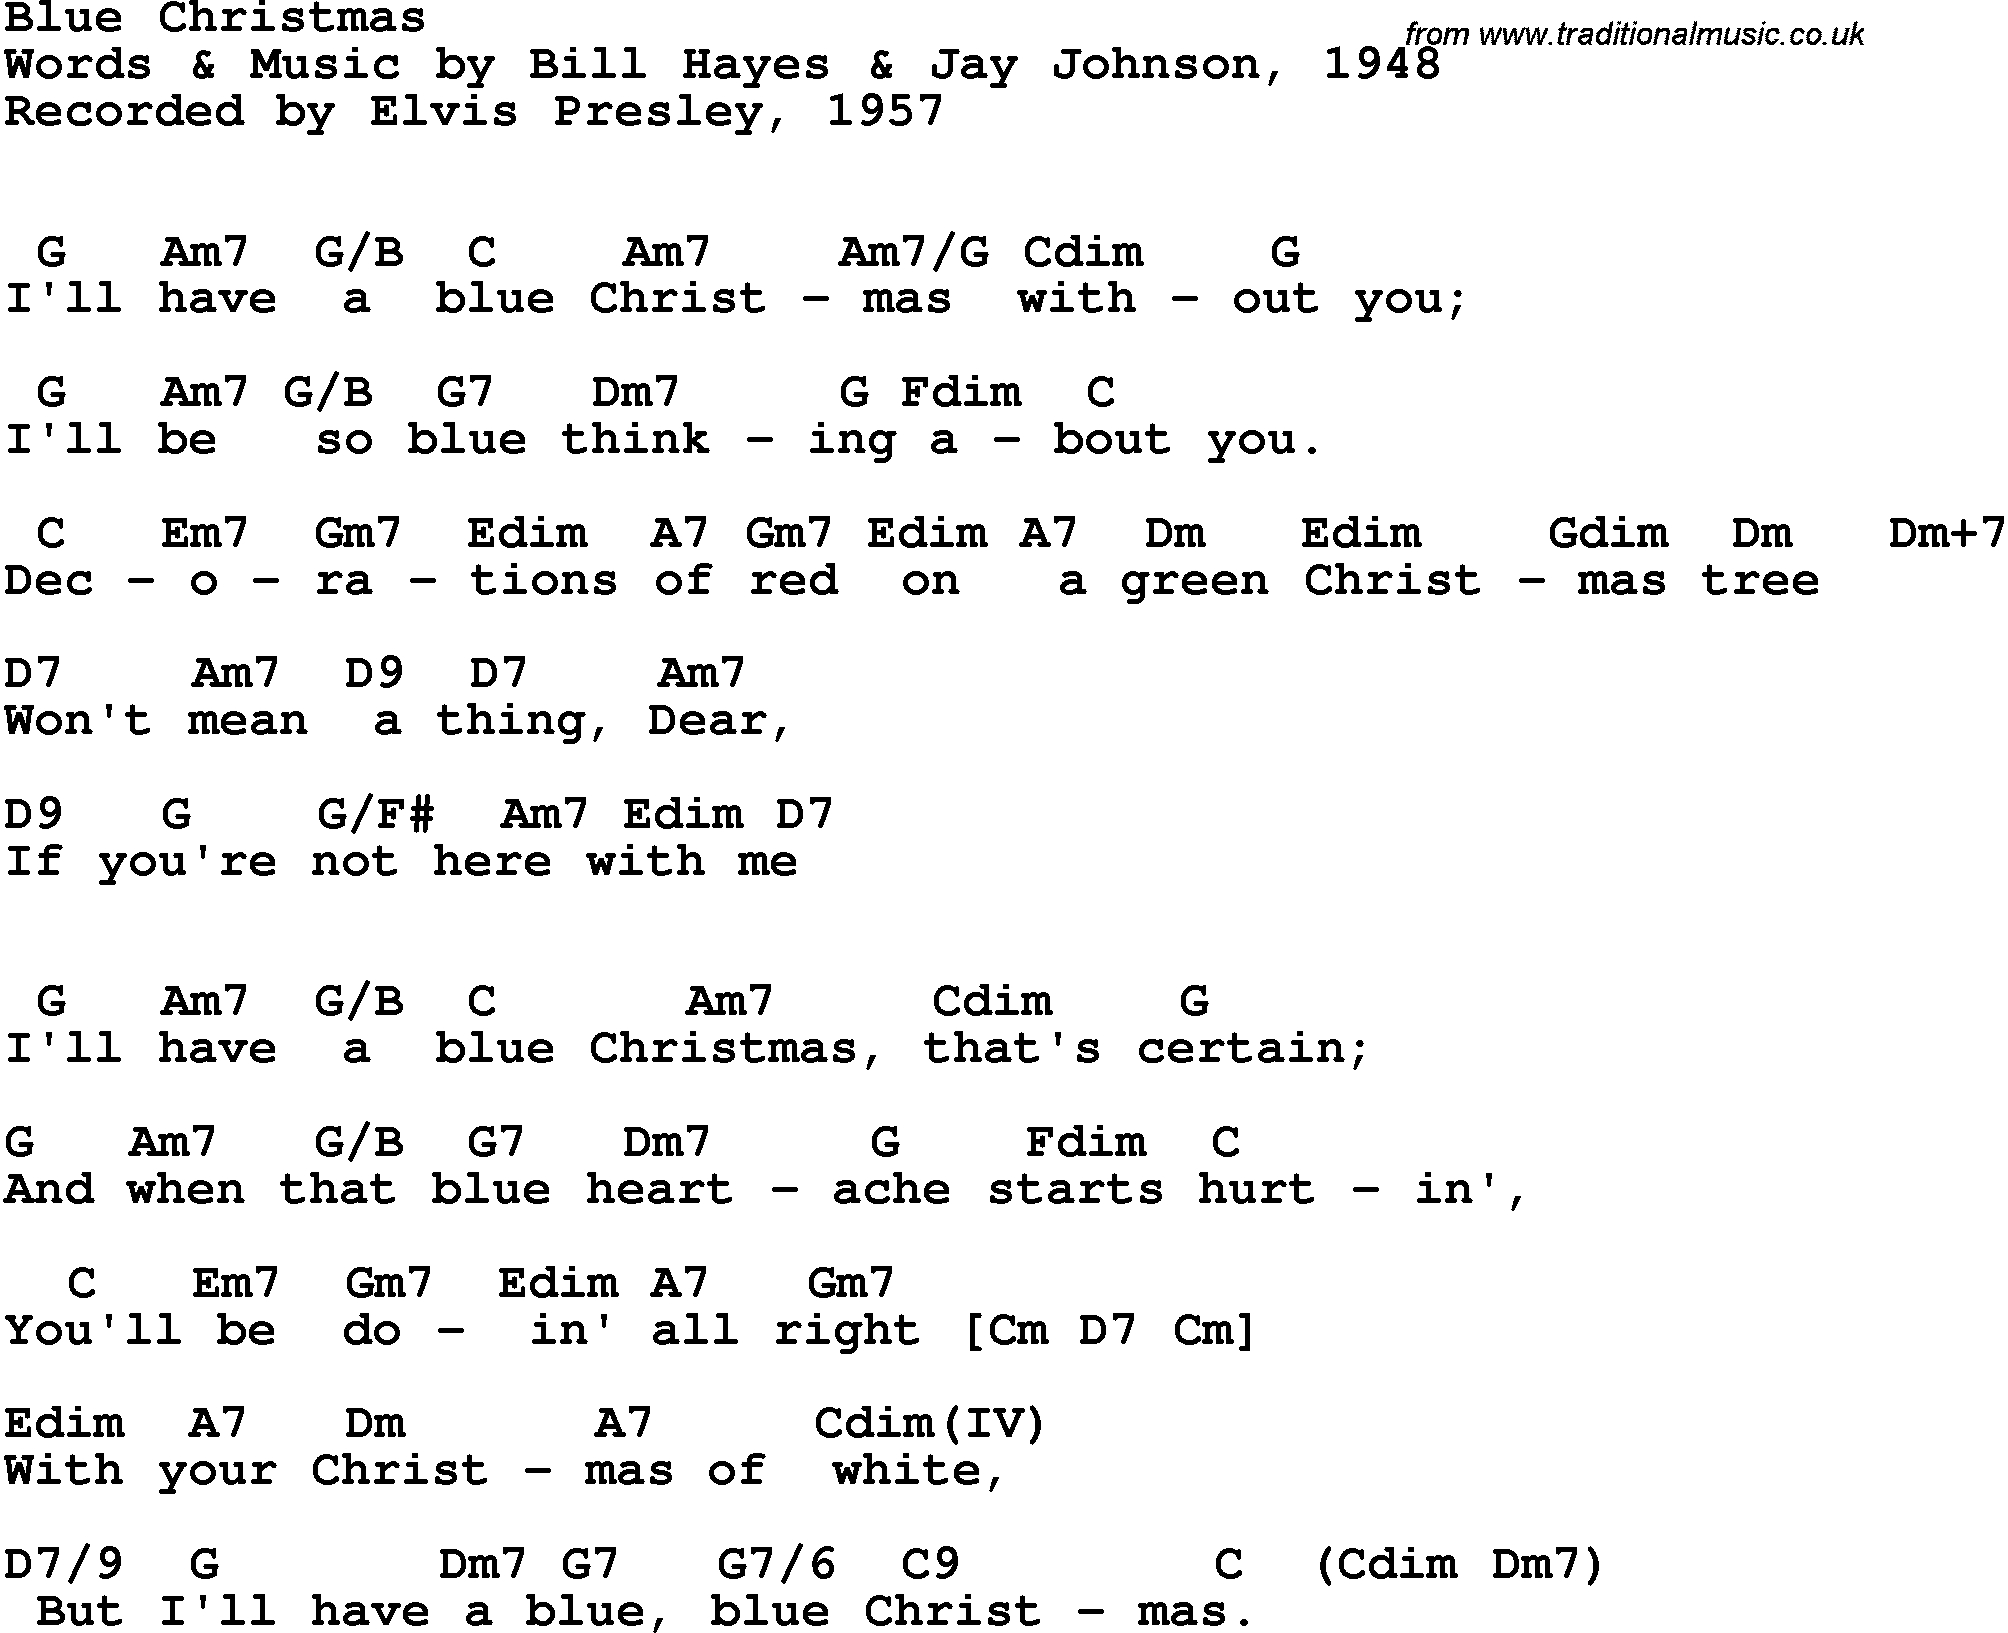 Blue Christmas Chords Song Lyrics With Guitar Chords For Blue Christmas Elvis Presley 1957